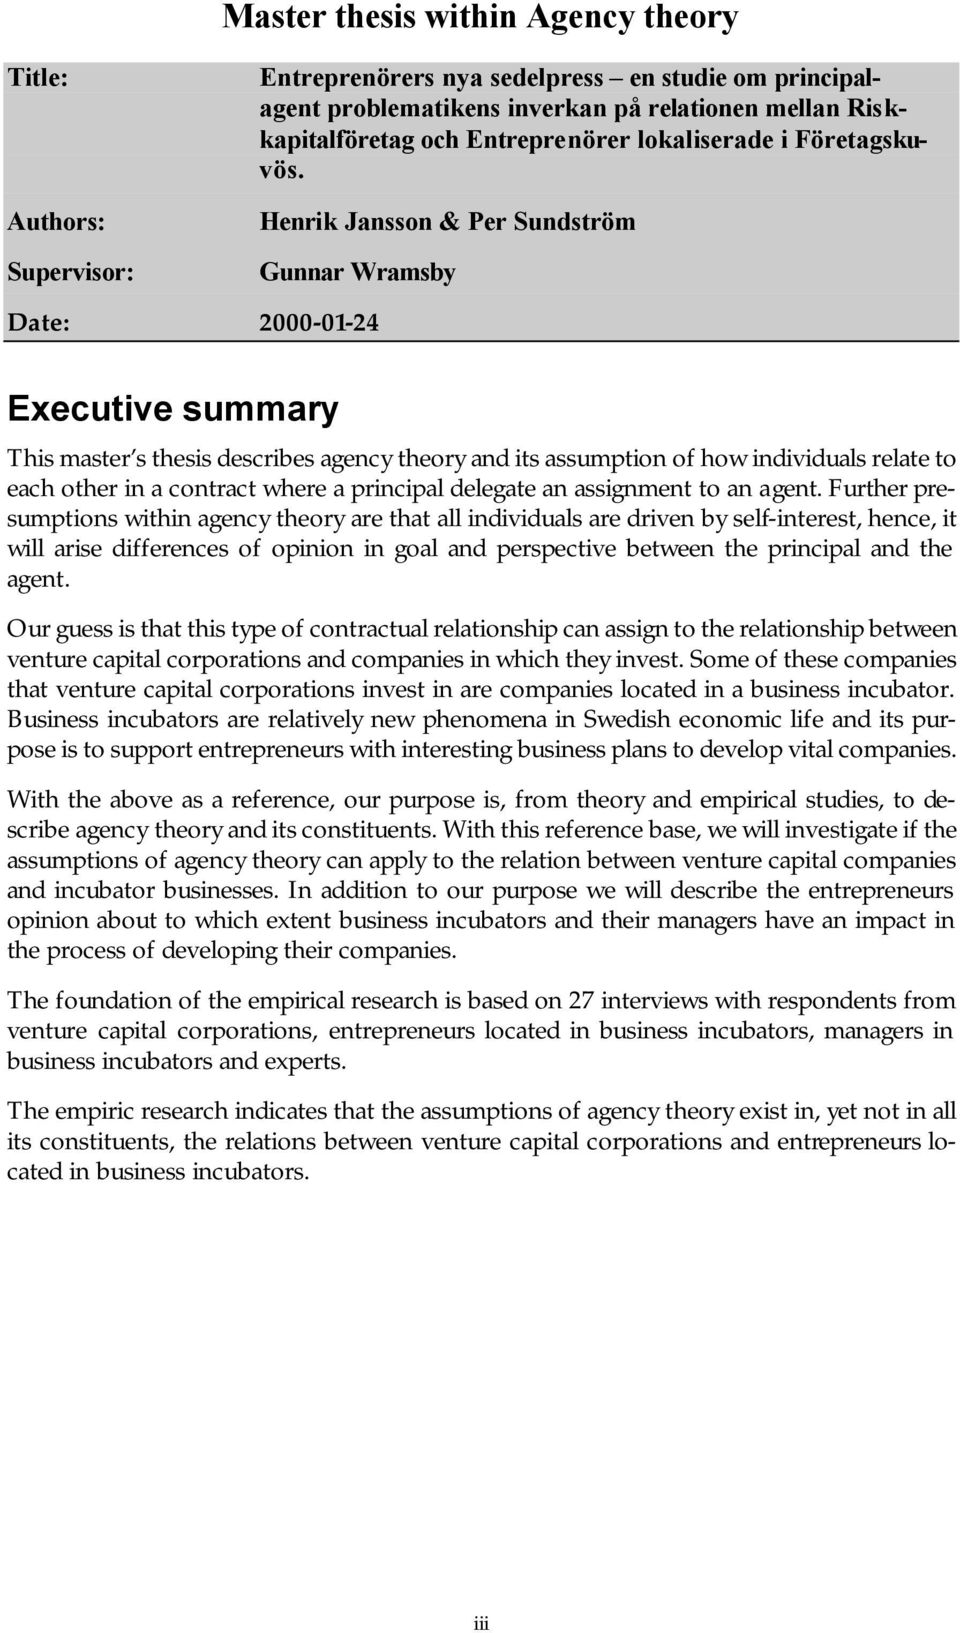 Authors: Henrik Jansson & Per Sundström Supervisor: Gunnar Wramsby Date: 2000-01-24 Executive summary This master s thesis describes agency theory and its assumption of how individuals relate to each